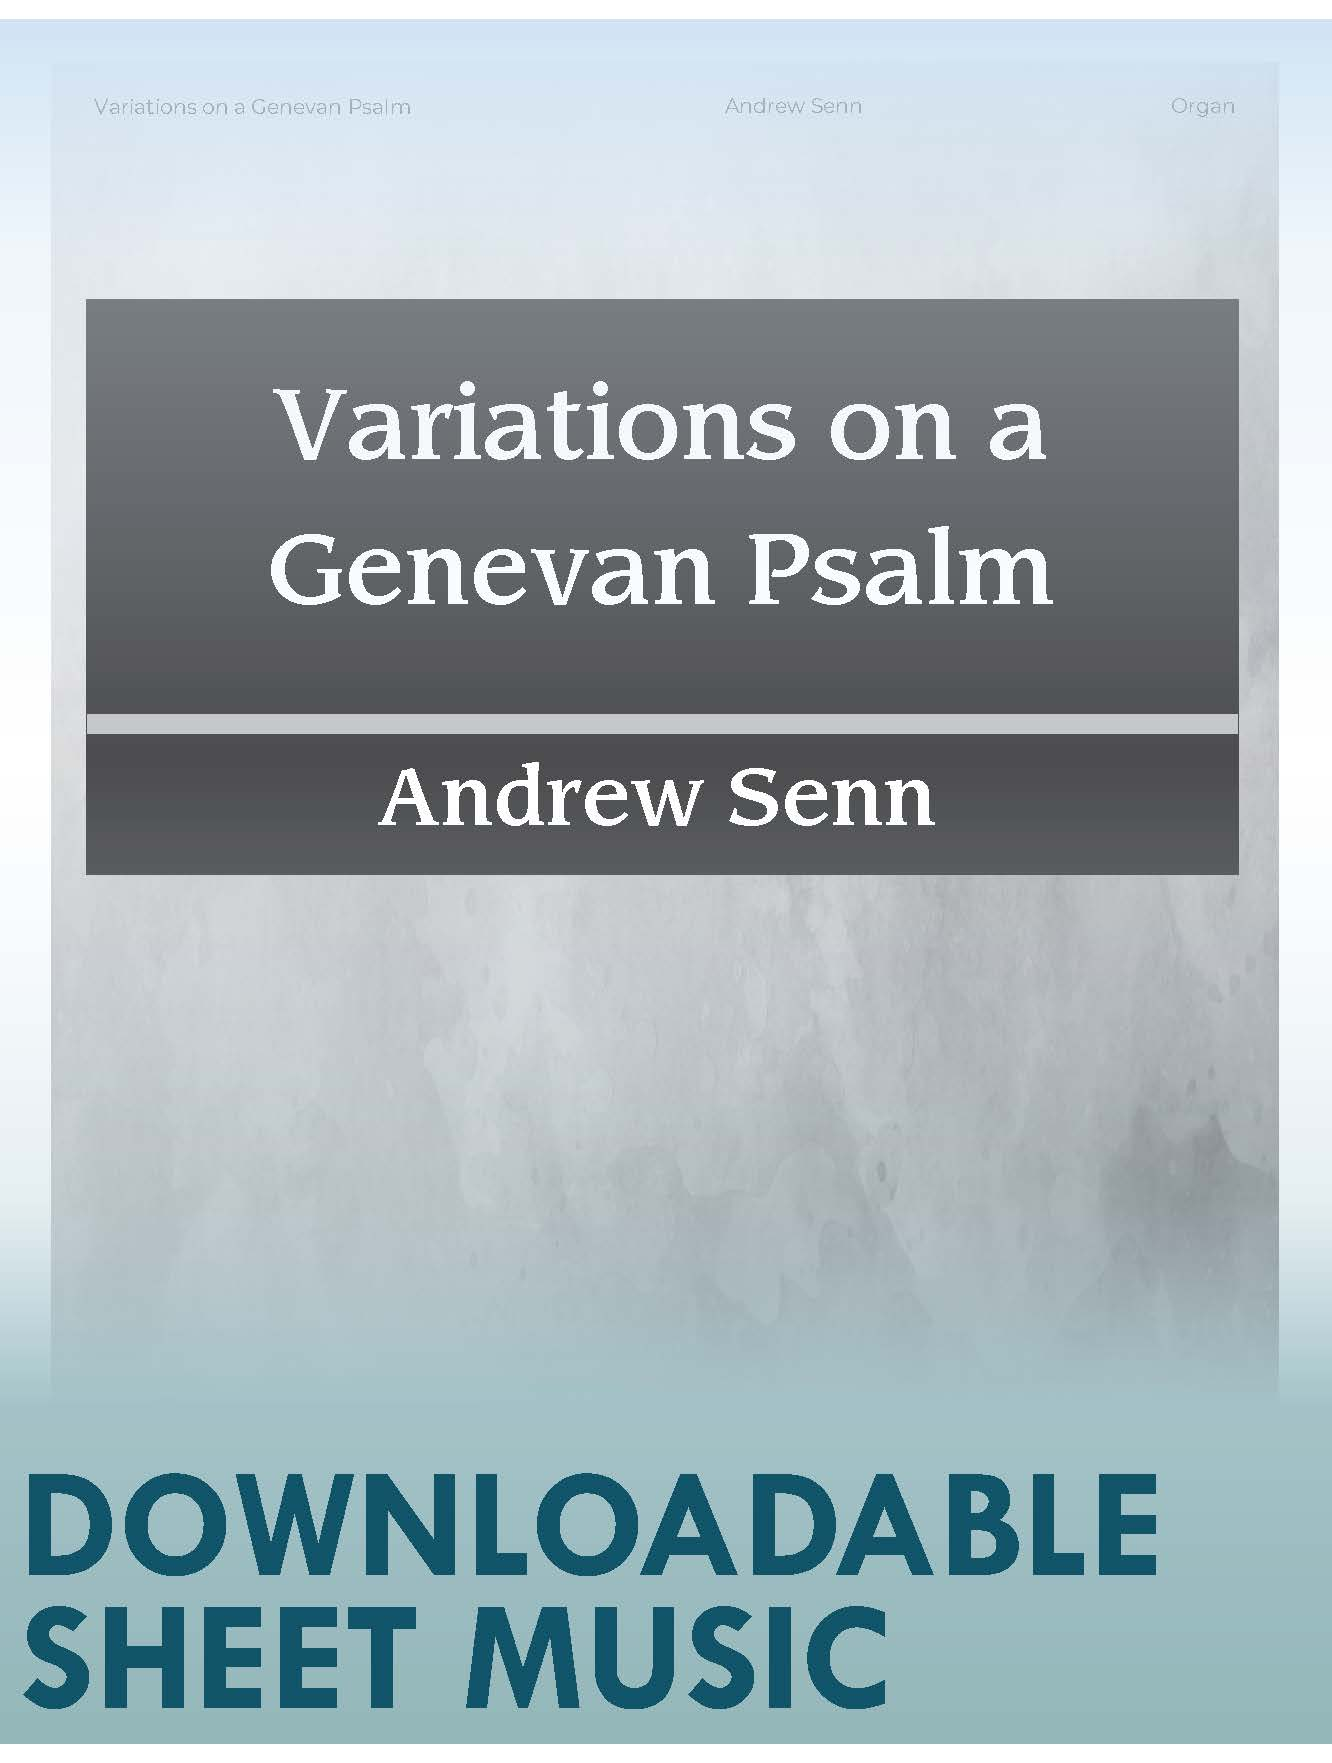 Variations on a Genevan Psalm - Digital Download